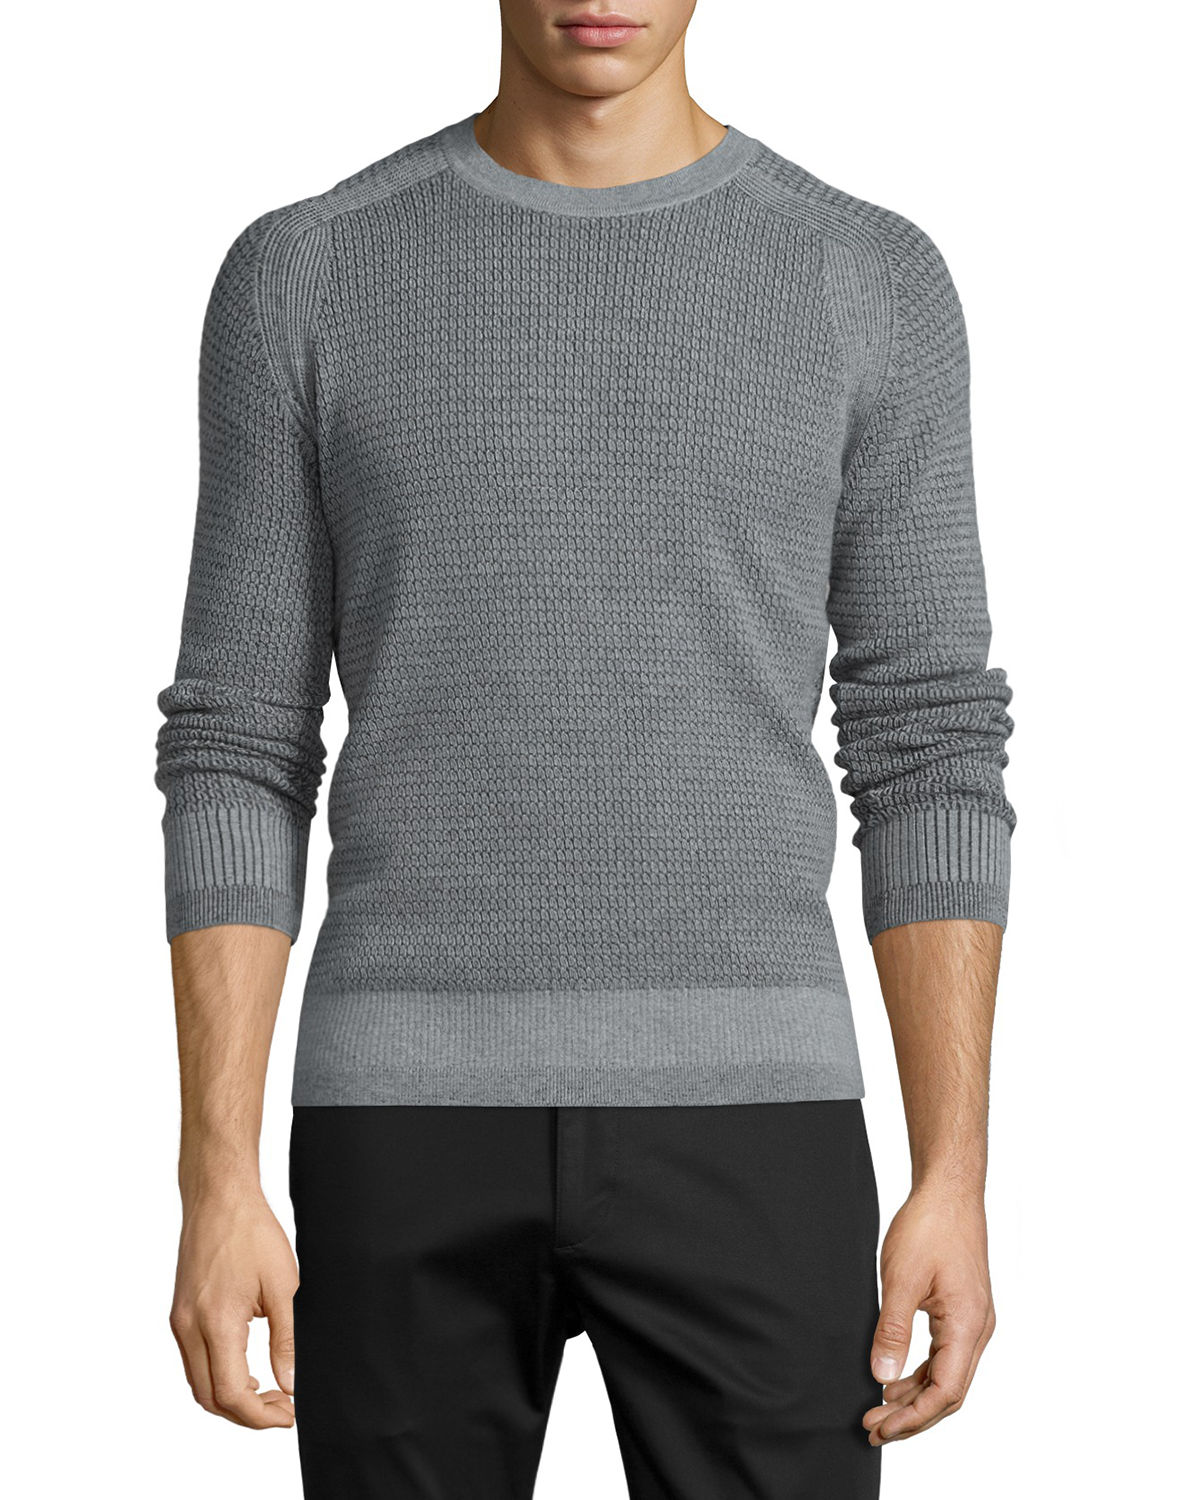 Aster Textured Wool Sweater